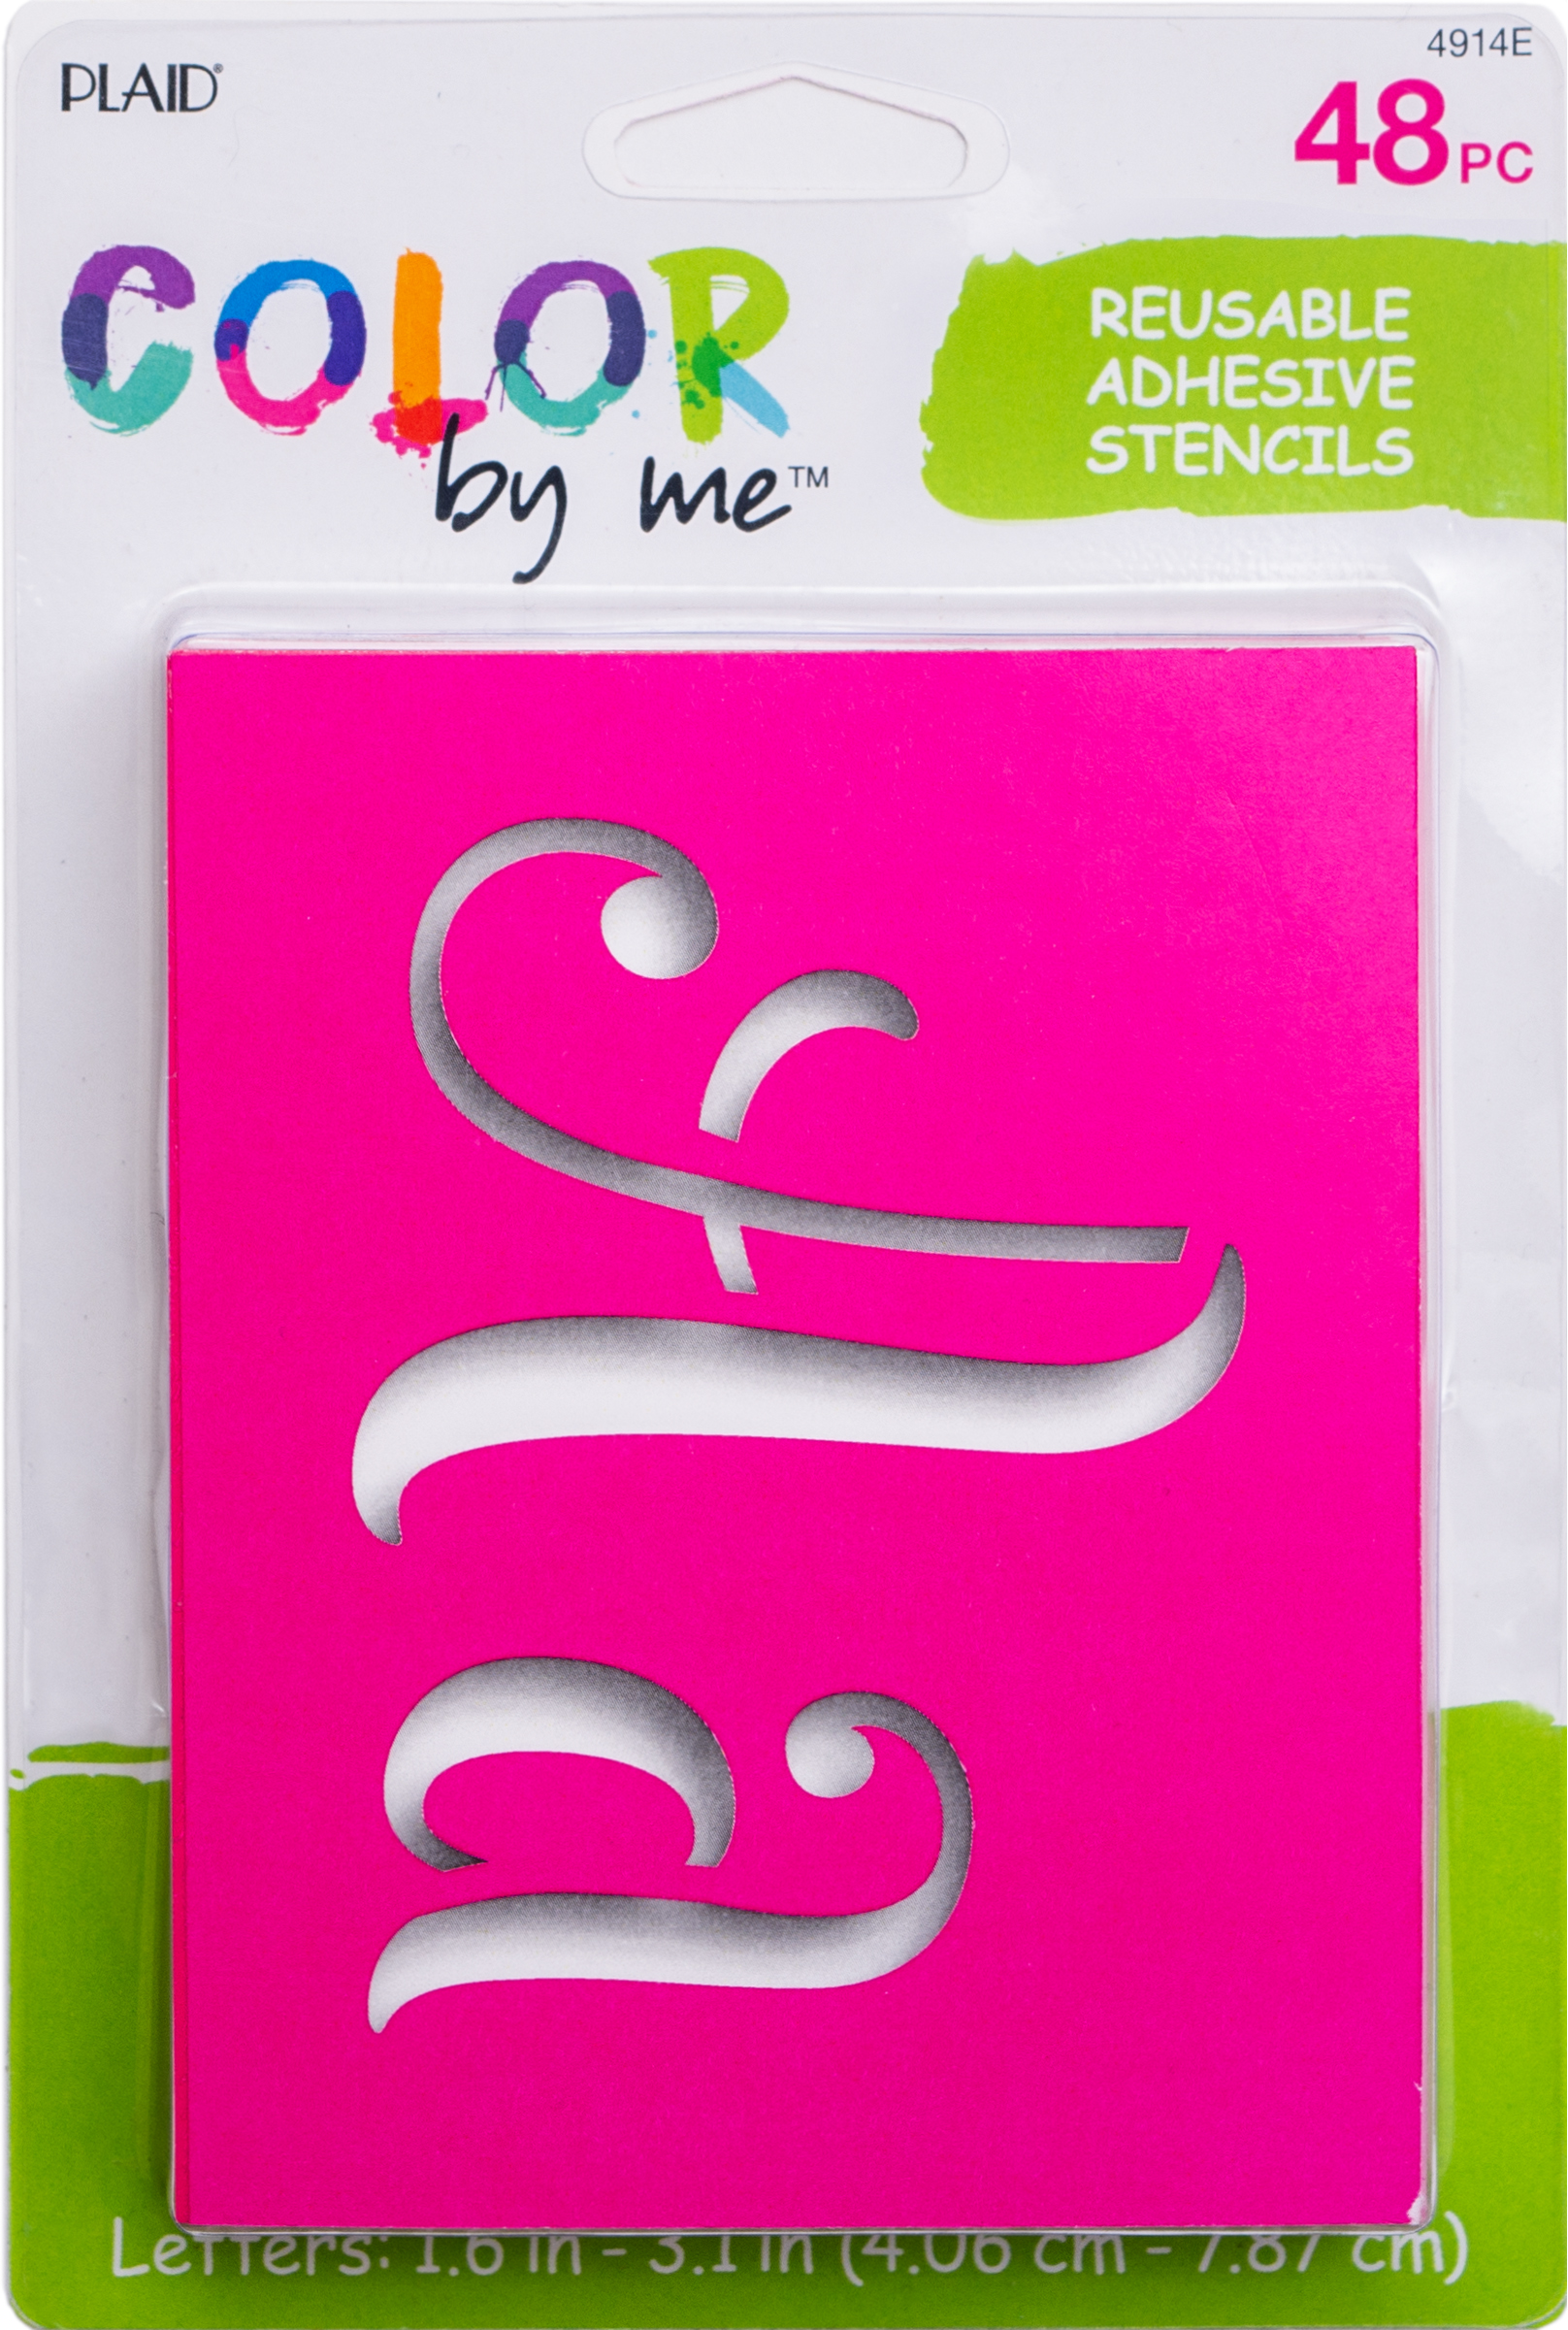 Color By Me 4914E Adhesive Paper Stencil Value Pack, Fantasy Letters, 4 in x 3 in, 48 Piece